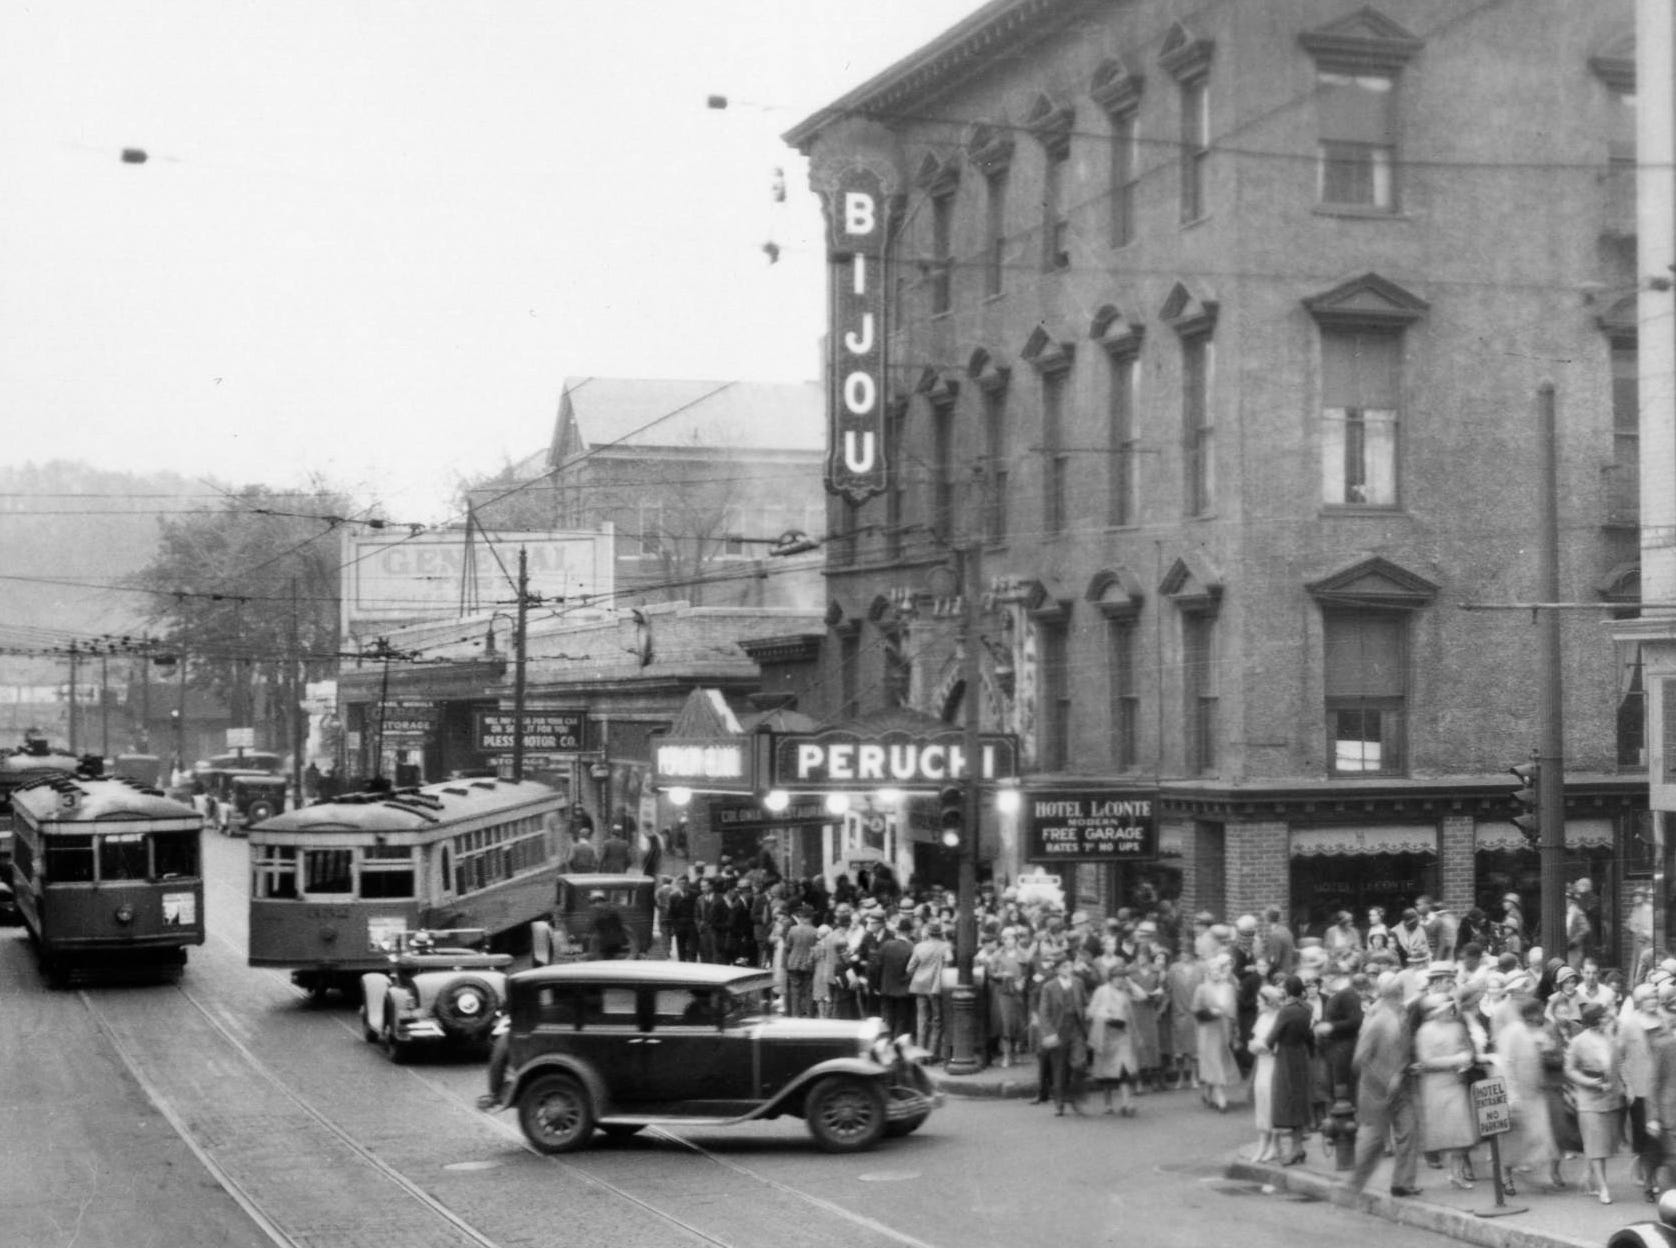 Gay Street looking south in 1932 showing a crowd in front of Bijou Theatre. Also shown are Pless Motor Co., Hotel LeConte, Cumberland Hotel, and East Tennessee Music Co.